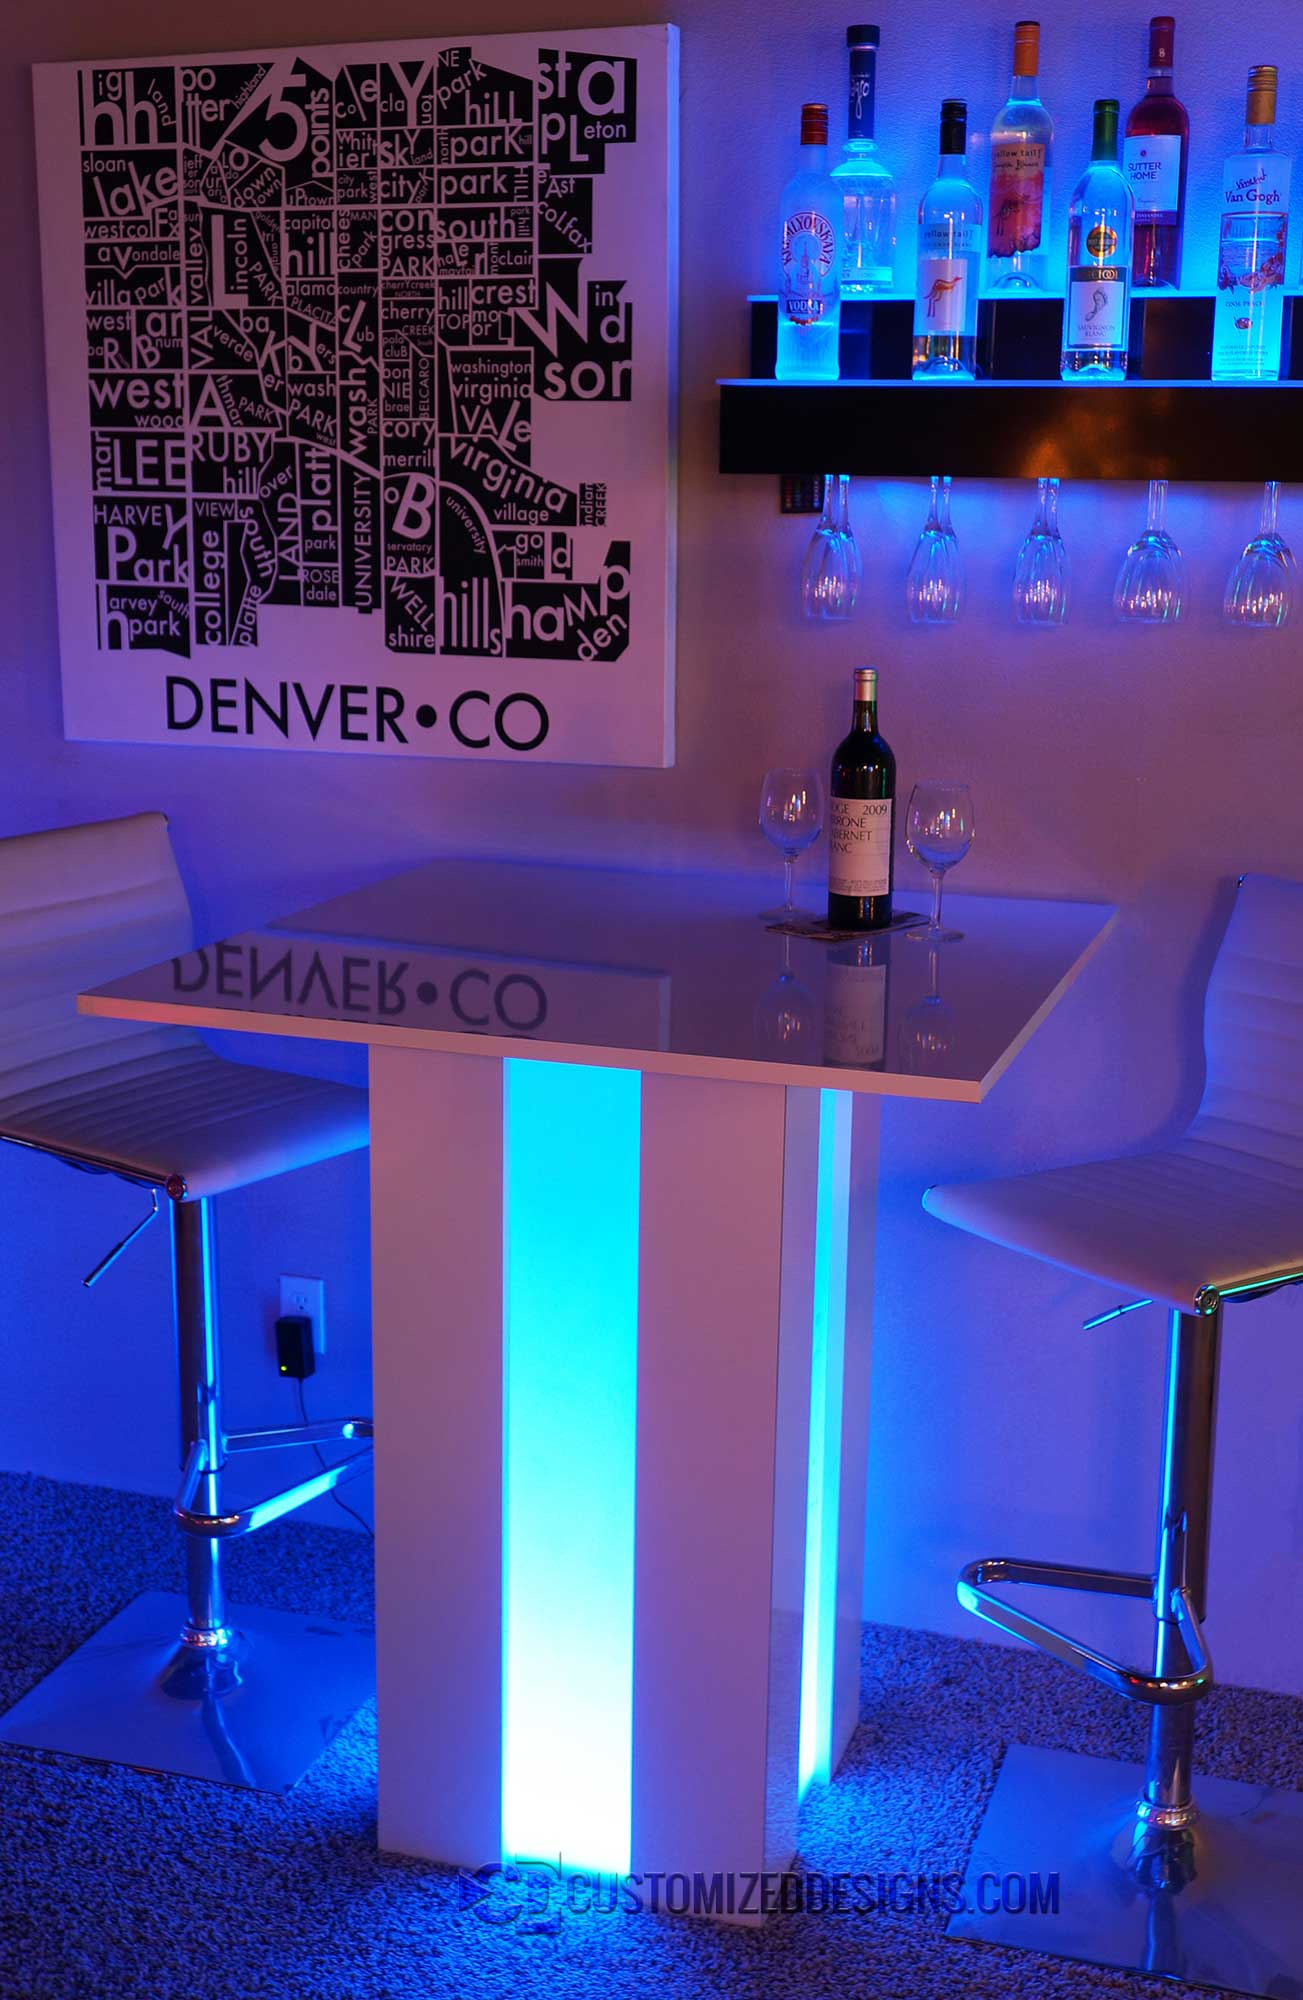 Mirage LED Lighted Cocktail Table  Customizeddesignscom